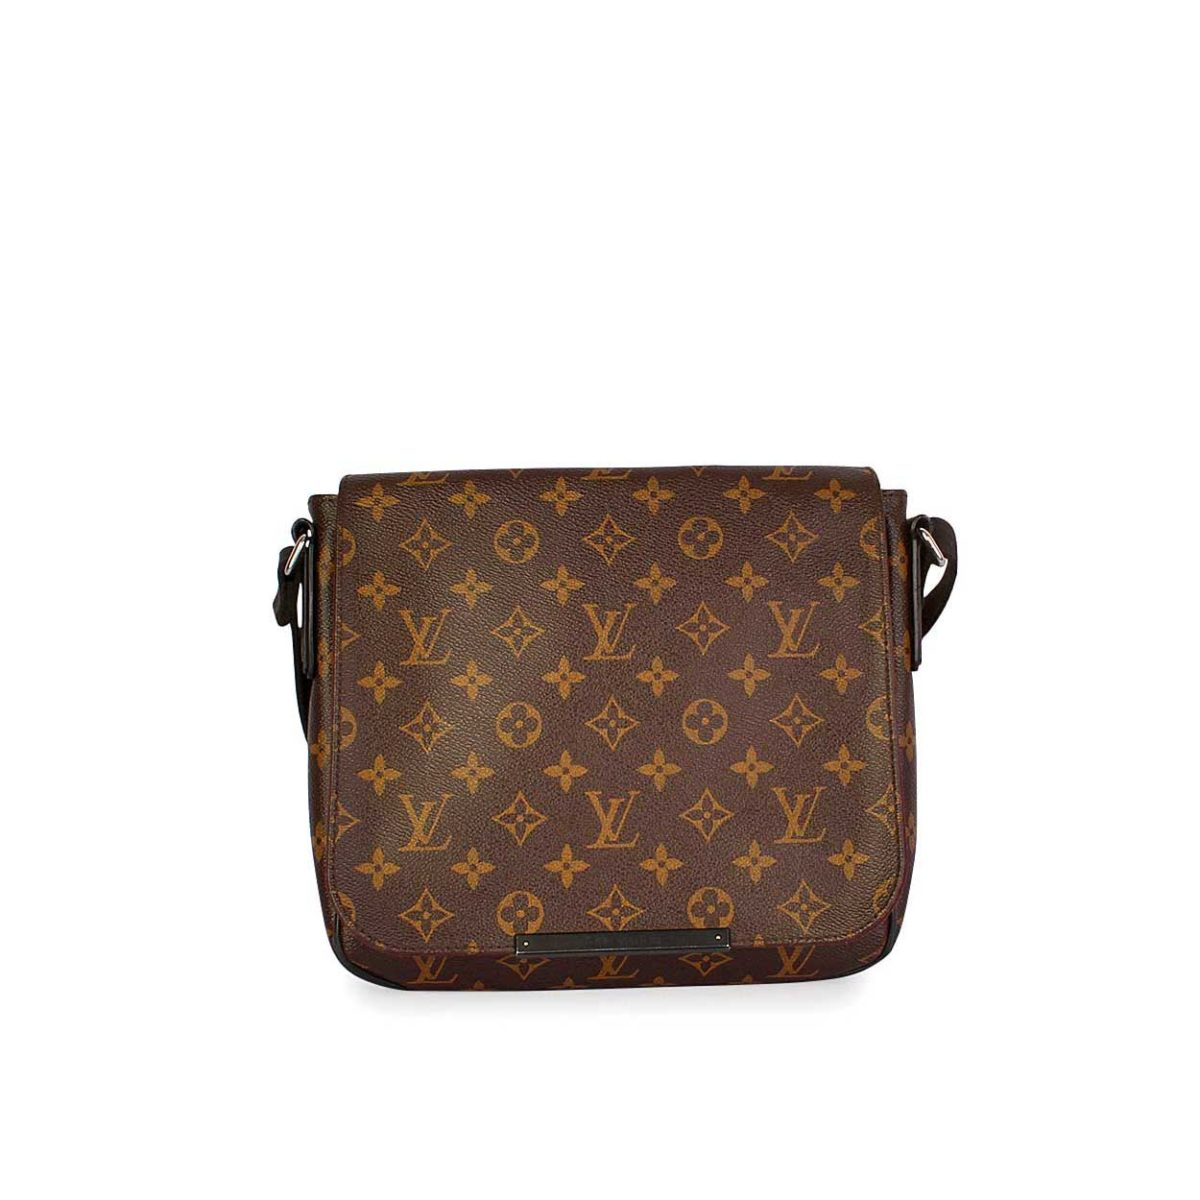 LOUIS VUITTON Monogram District PM Messenger Bag  1e8bc2b11daaa